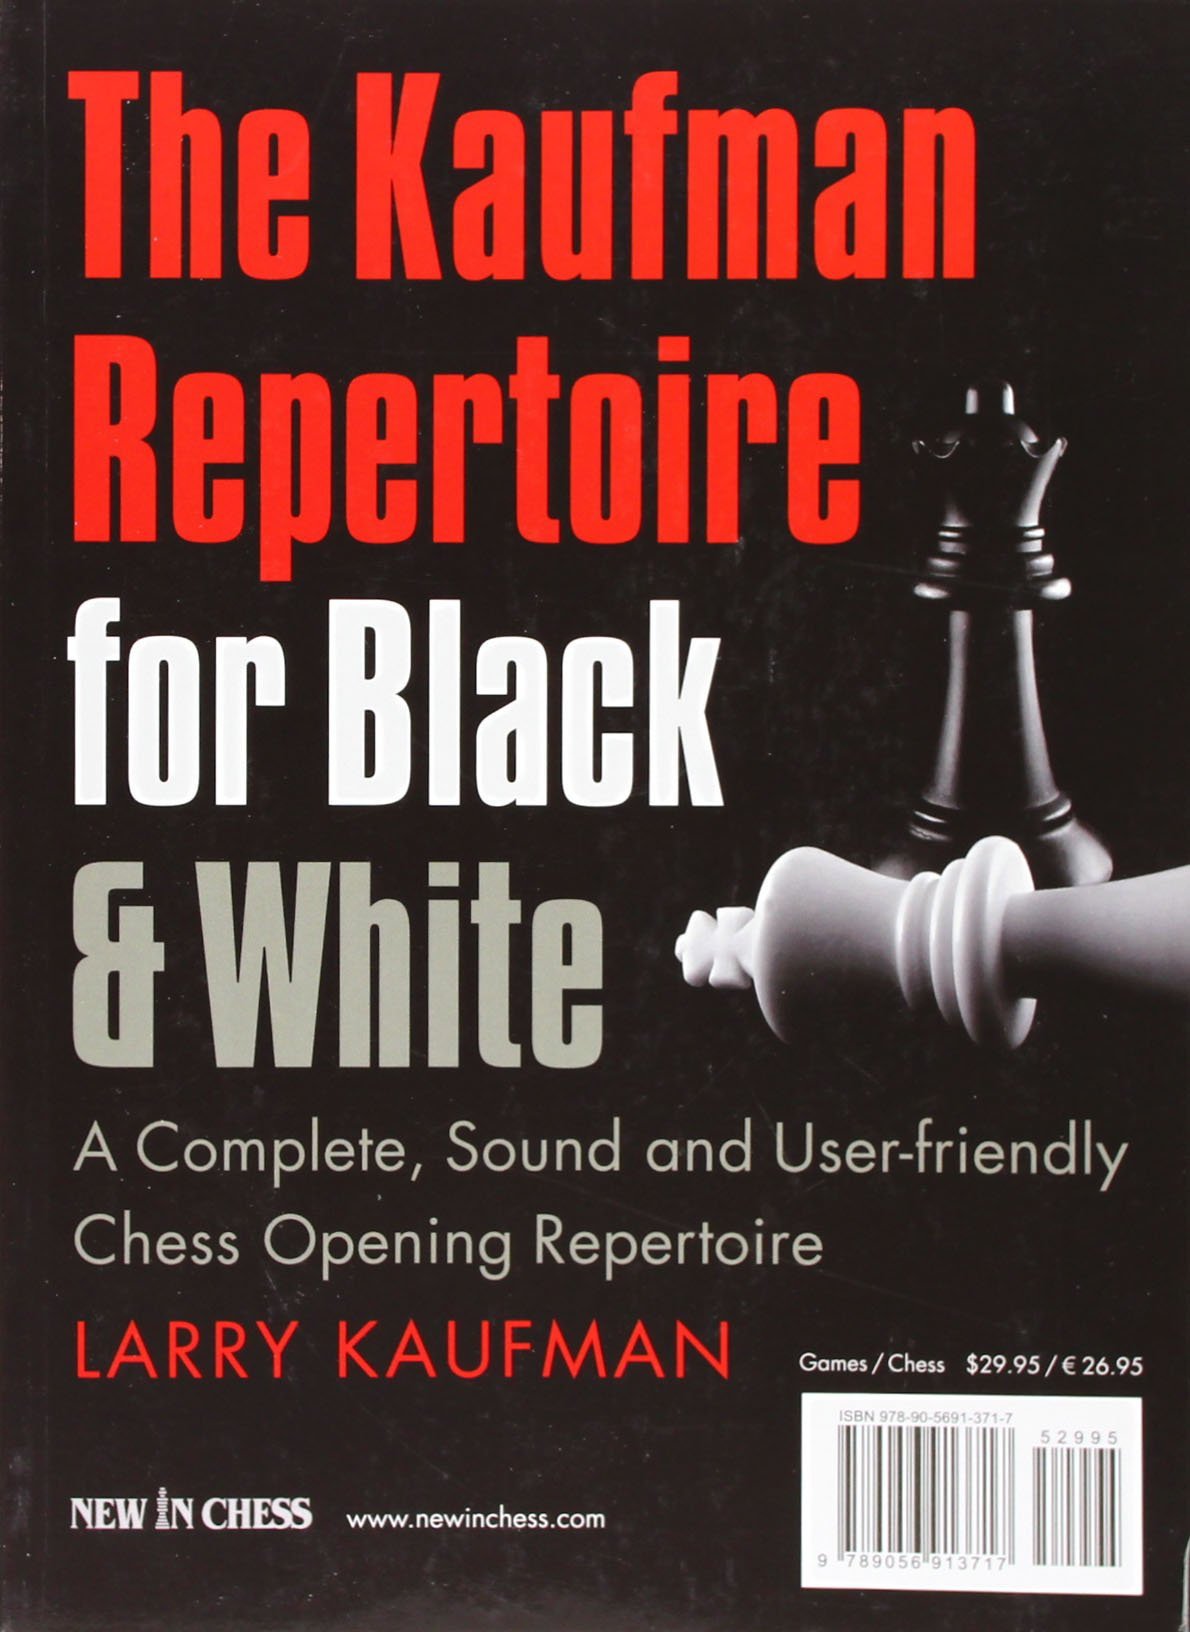 The Kaufman Repertoire for Black and White contraportada - New in chess